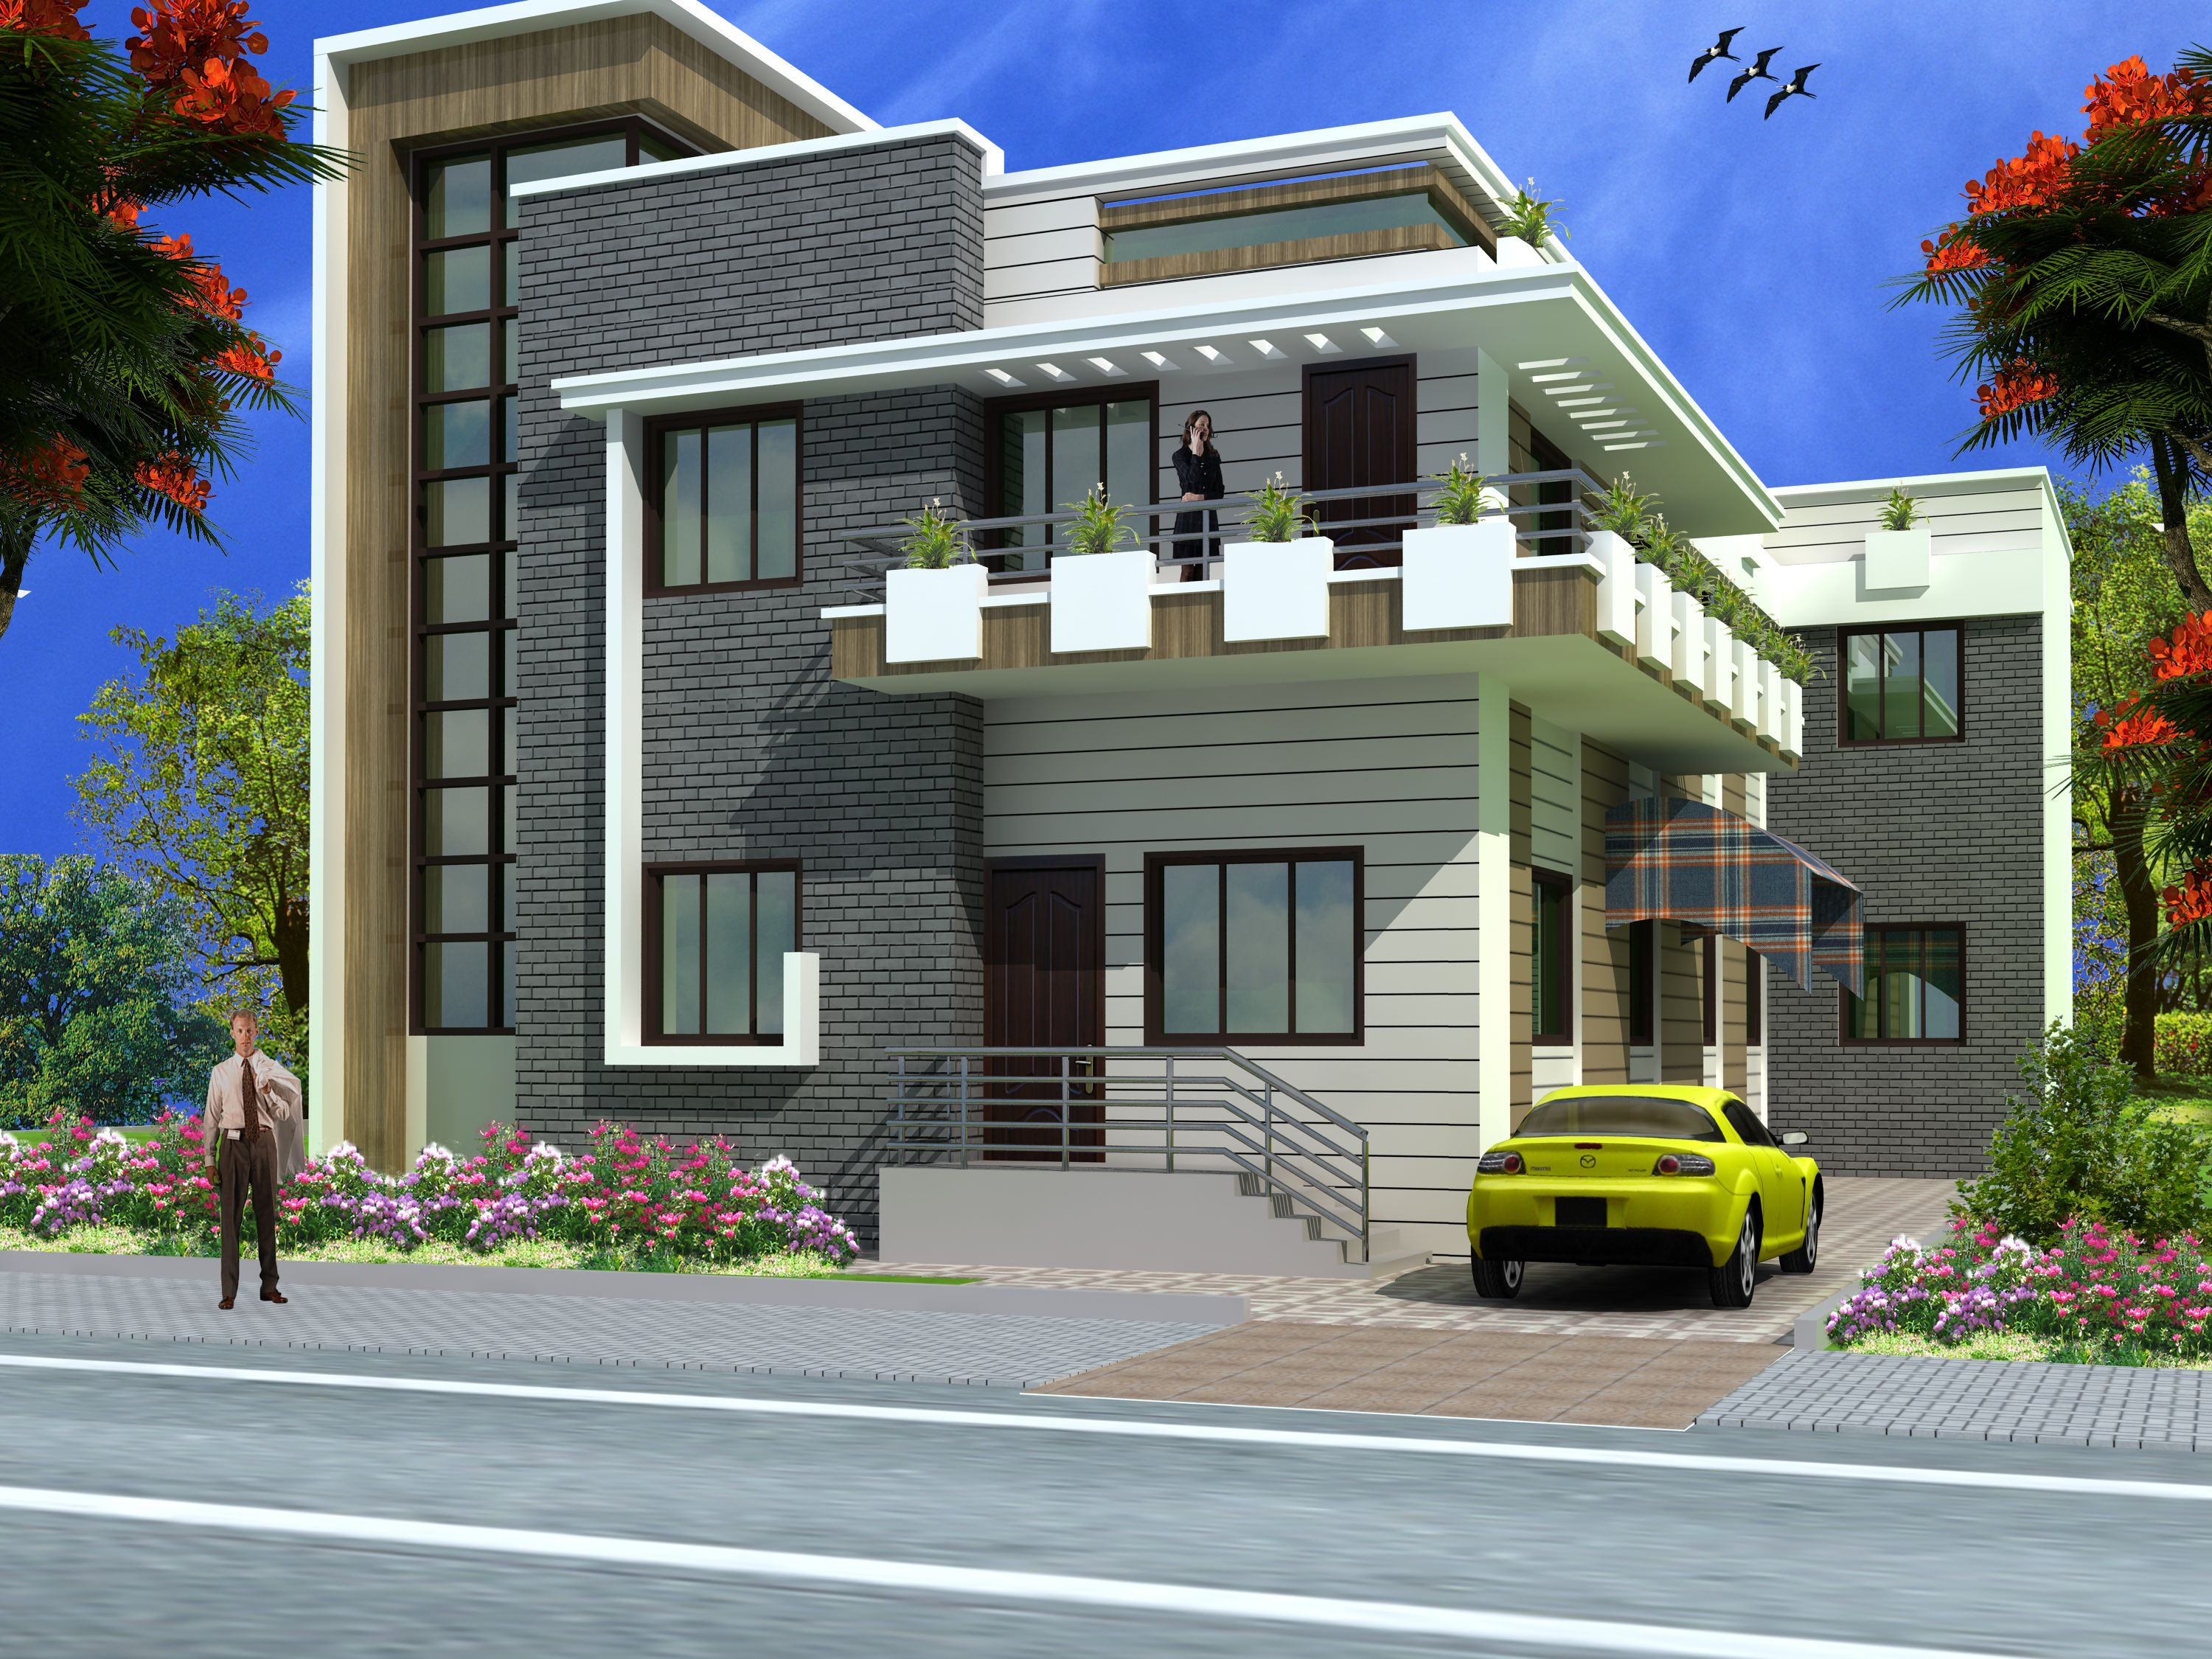 Modern duplex 2 floor house design click on this link for Elevation design photos residential houses